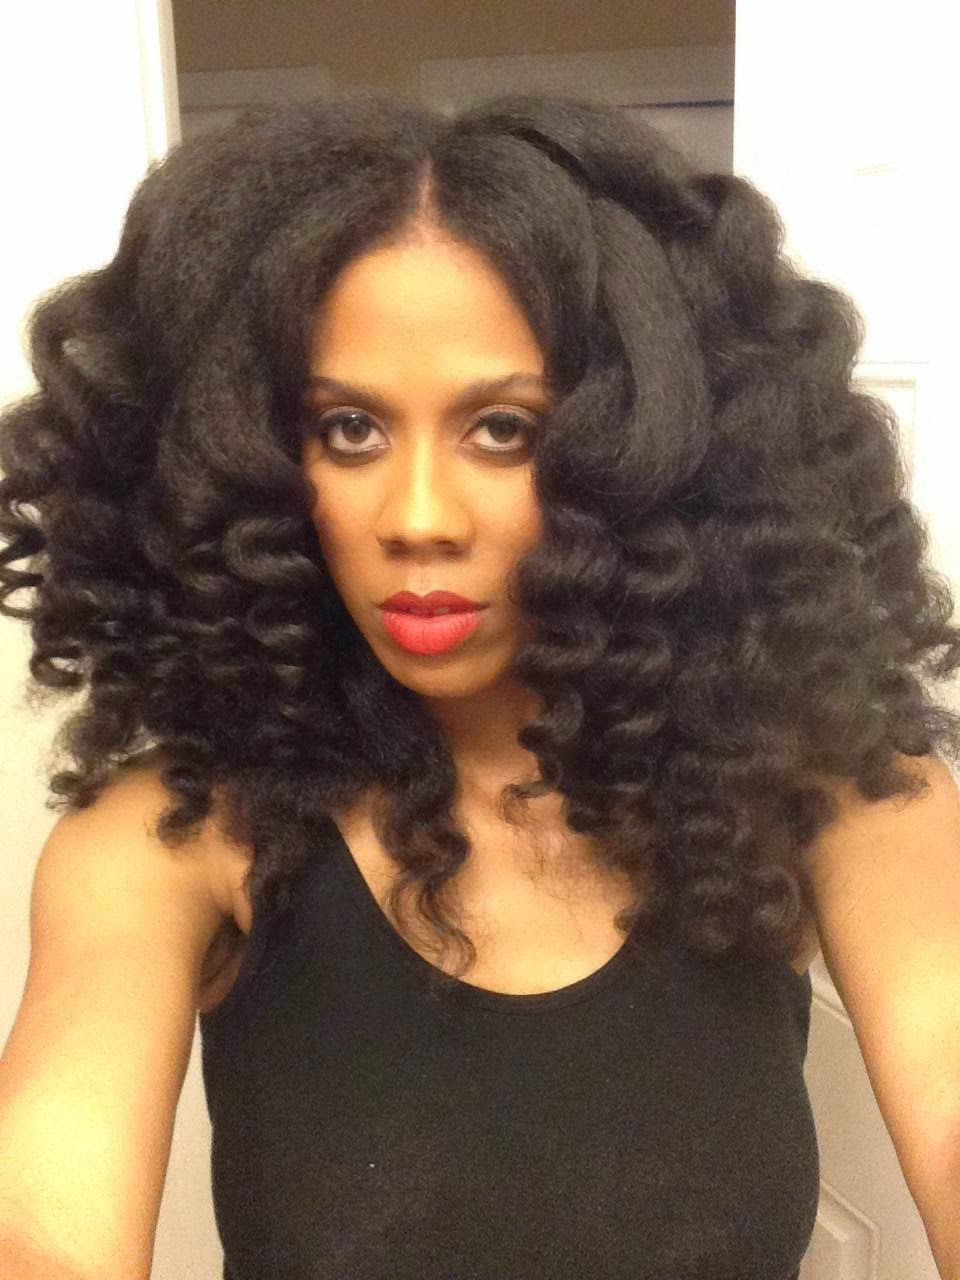 Curling Wand Tutorial For Natural Hair Curlynikki Natural Hair Care